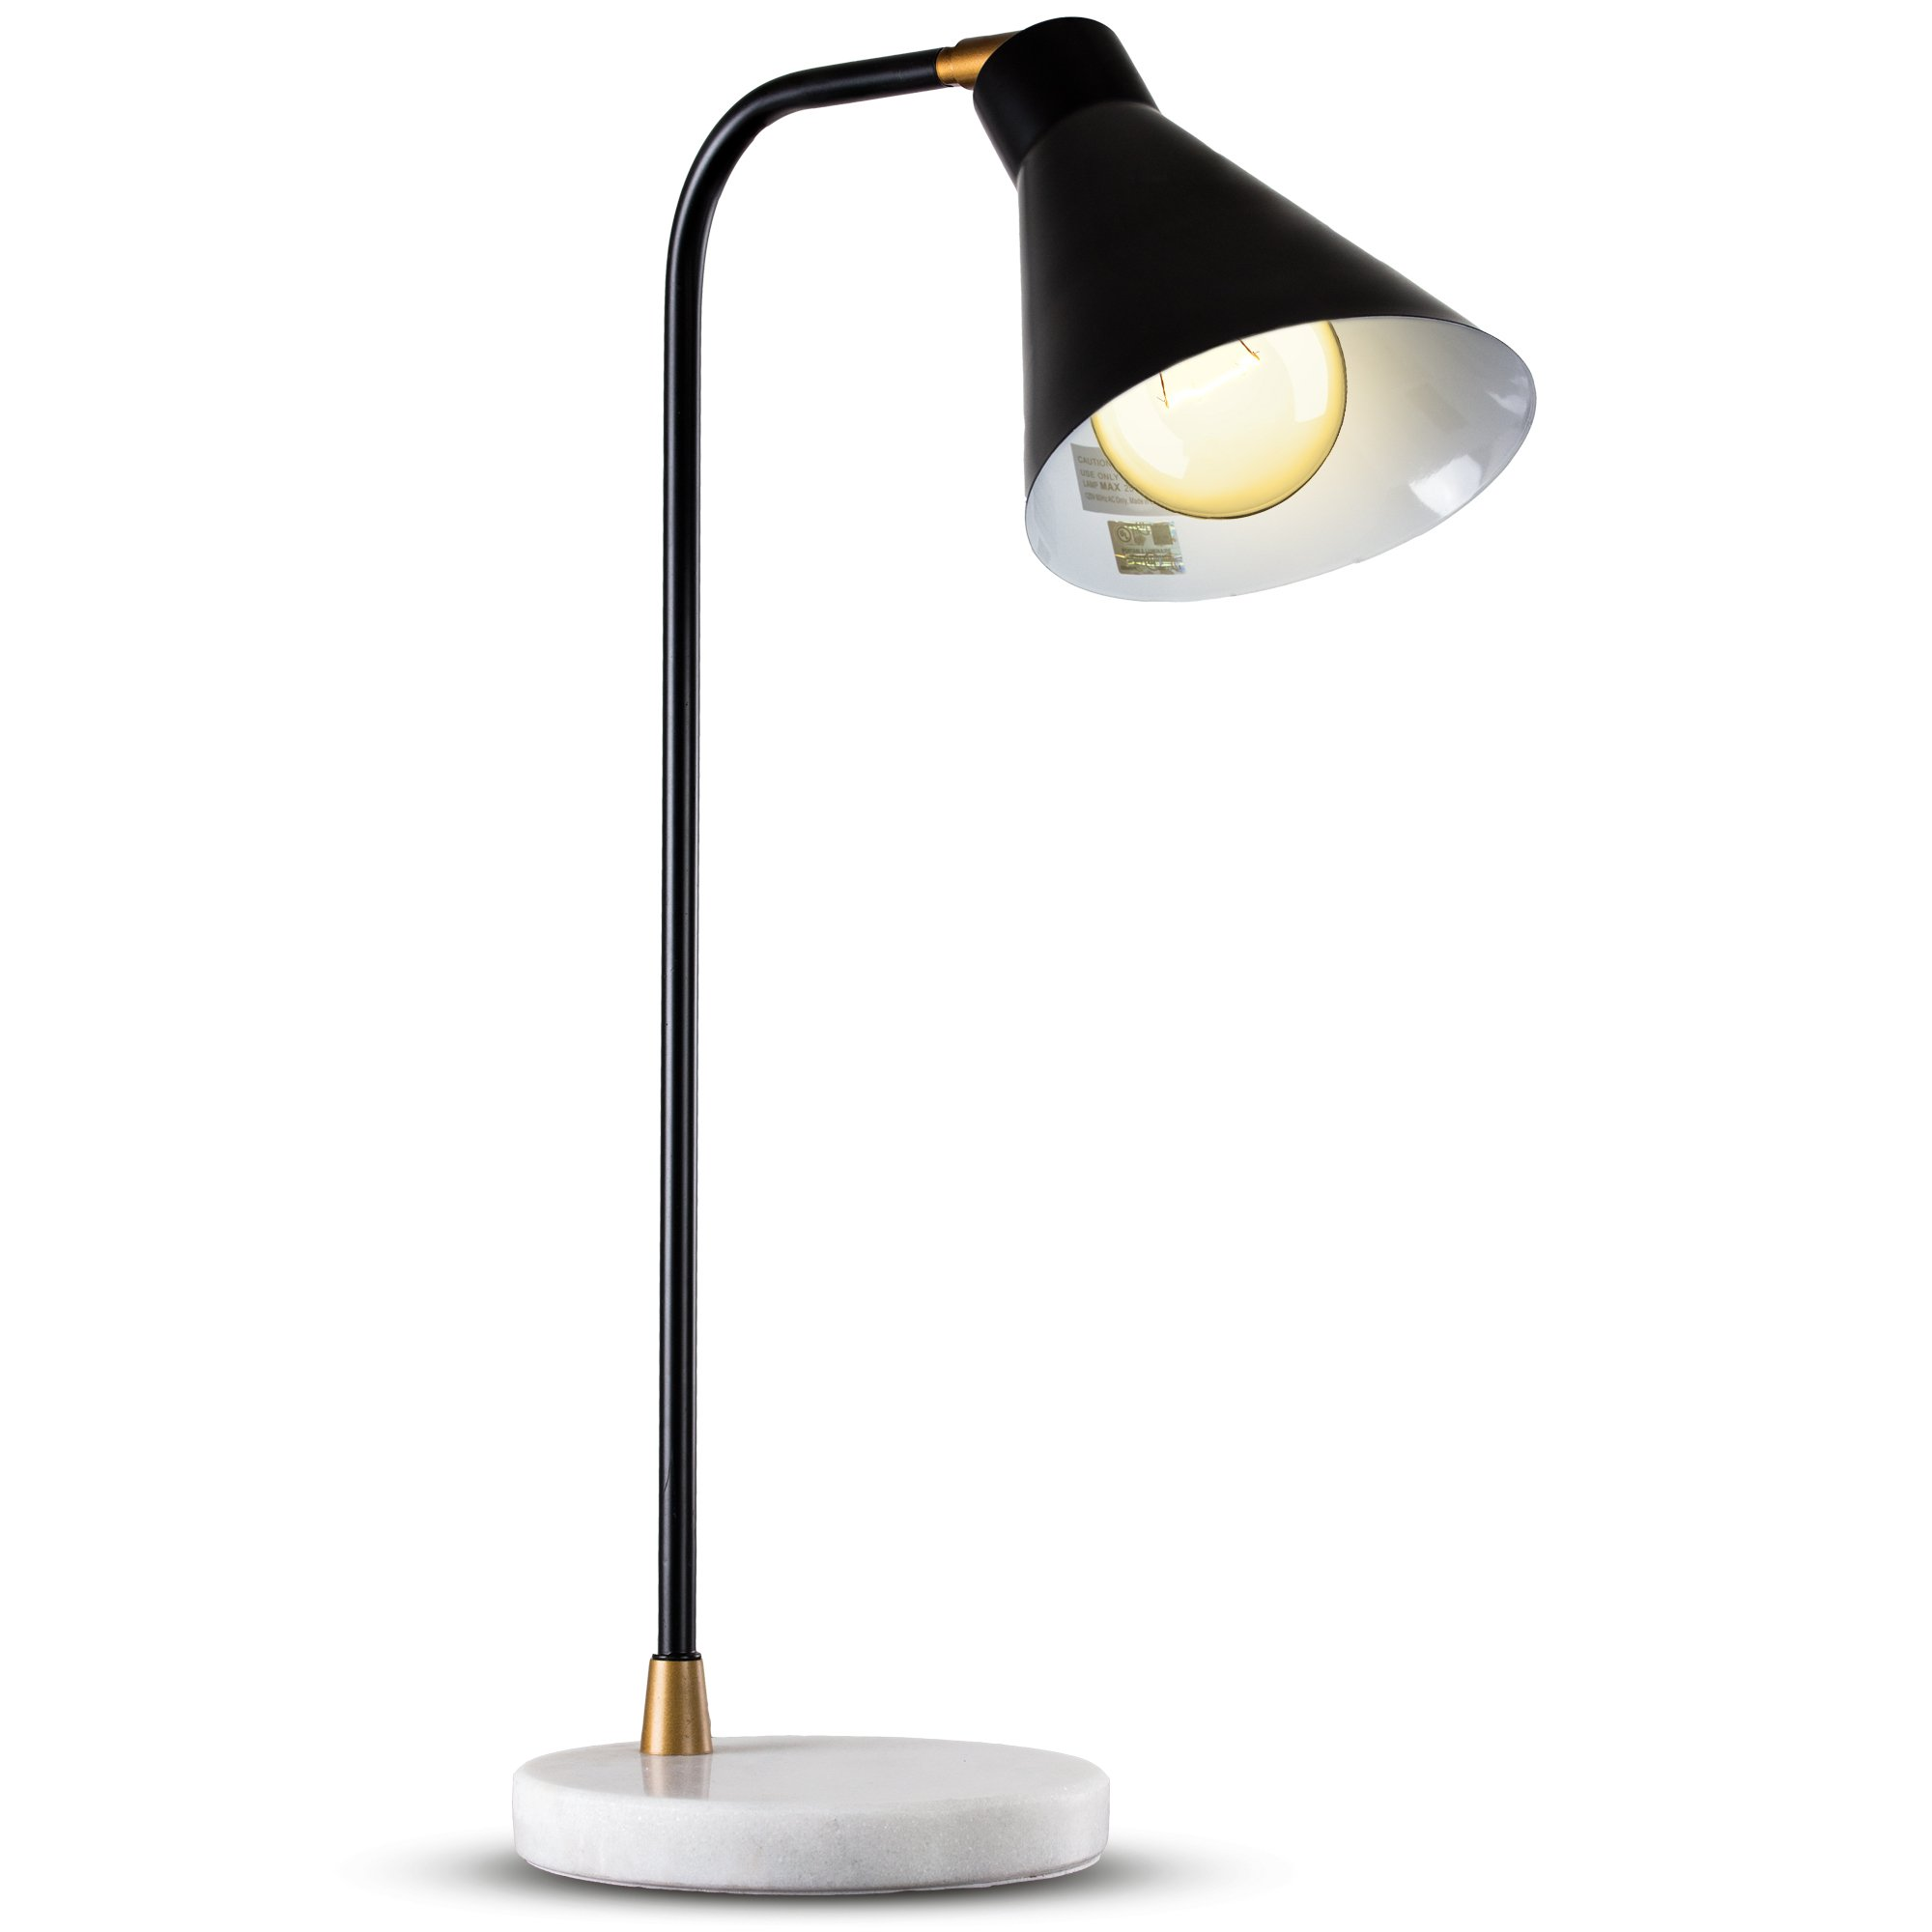 lamp type light anglepoise spring adjustable desk with